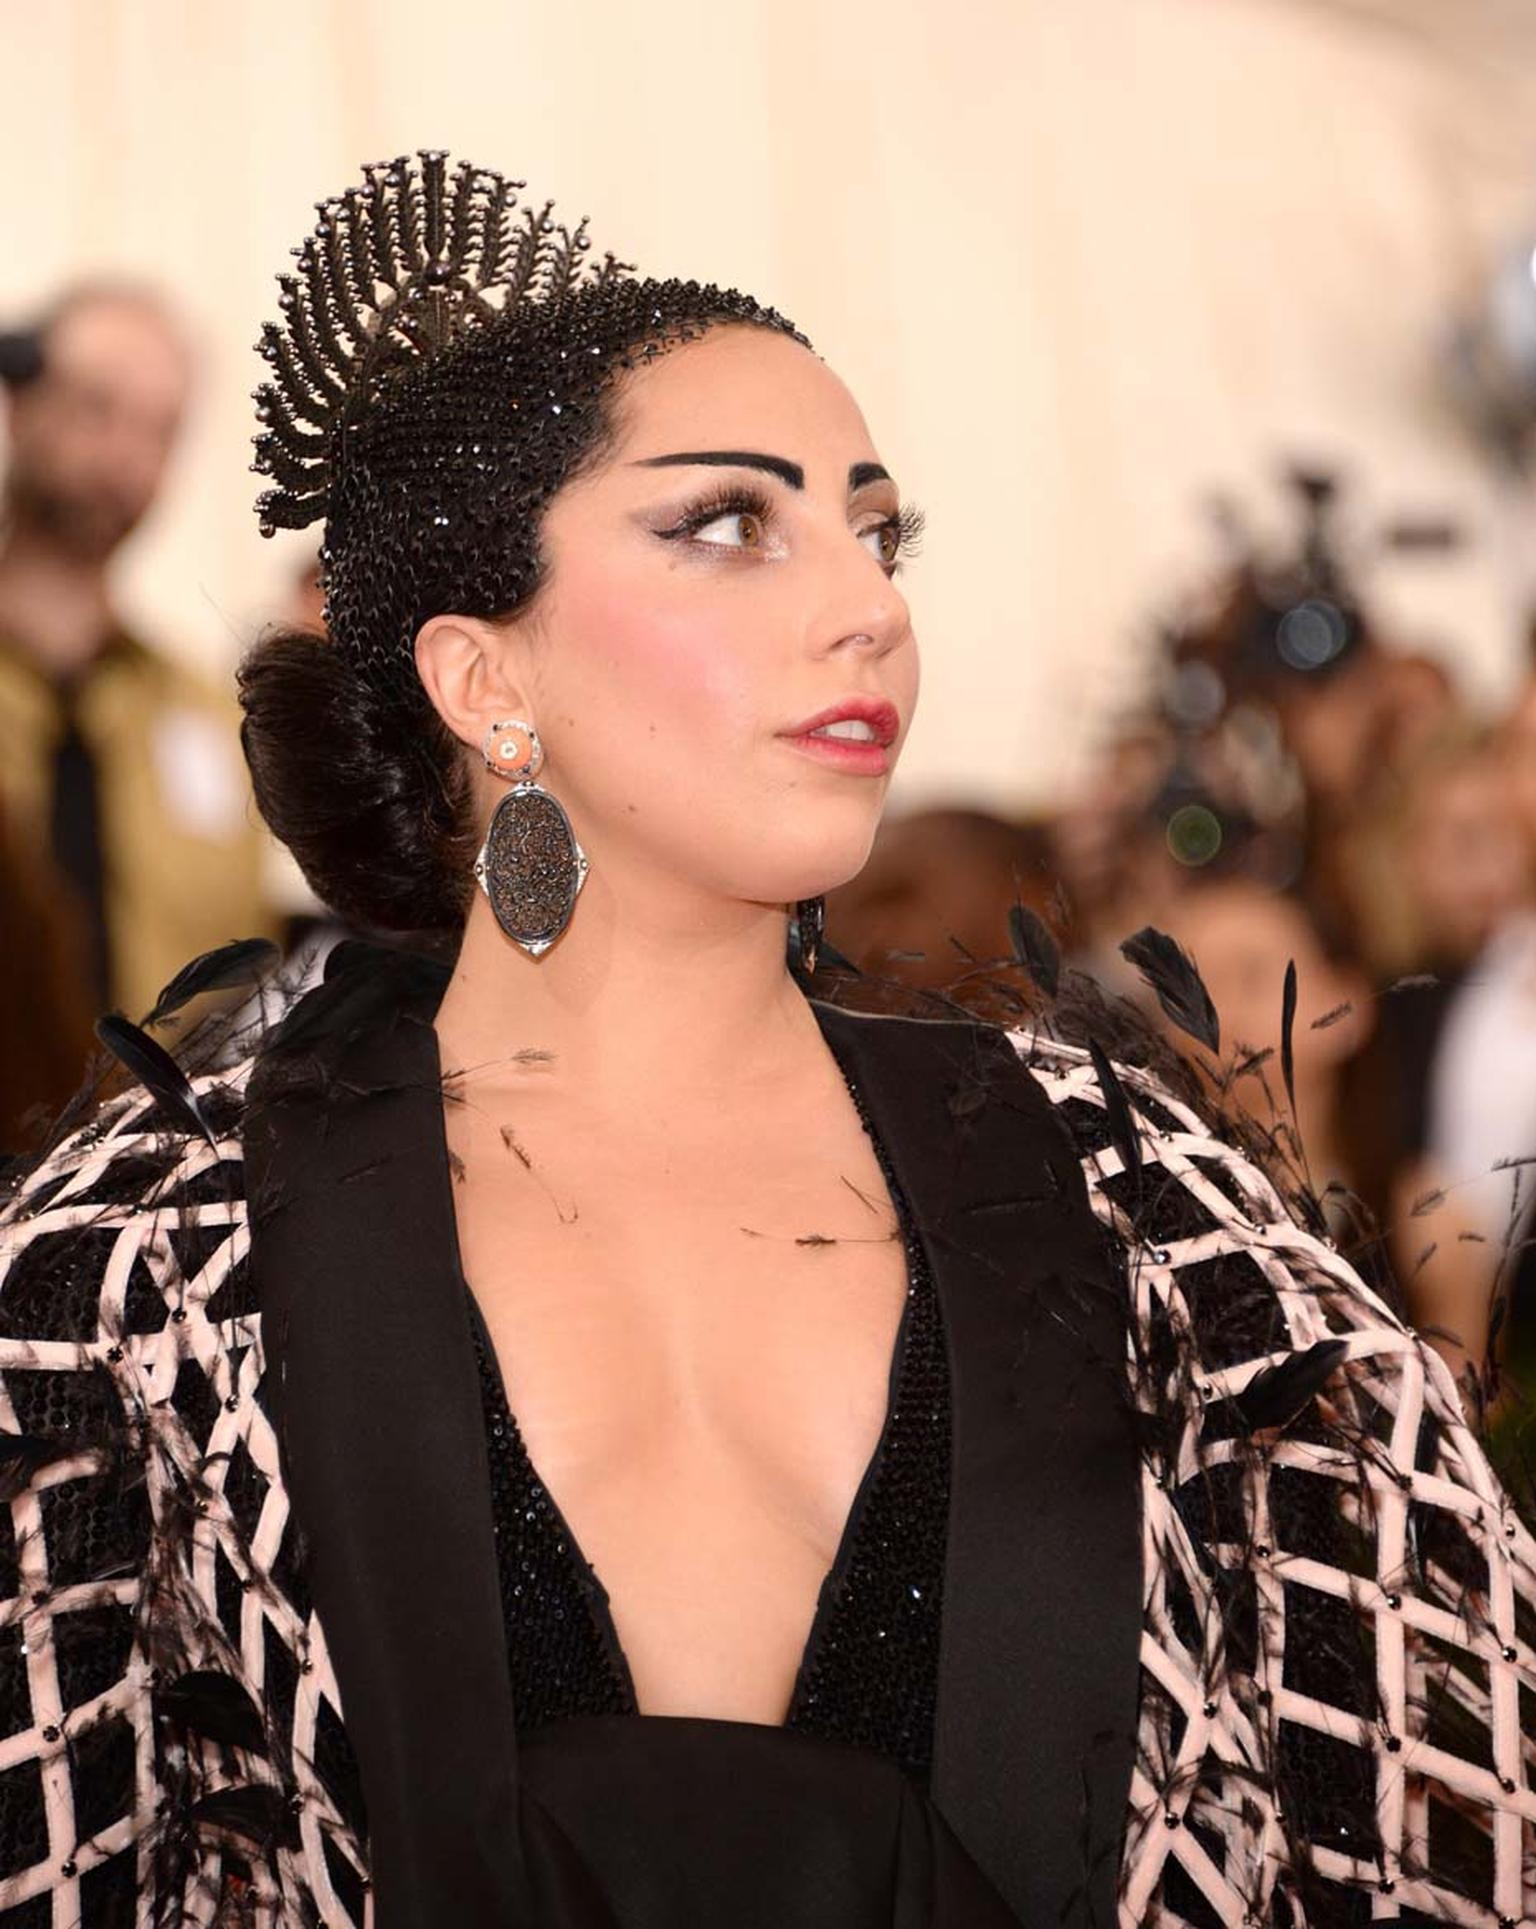 Wearing coral, black jade and diamond earrings by Fred Leighton and a diamond and black enamel modernist ring, Lady Gaga wowed the crowds at the Met Gala in her Oriental-themed outfit.